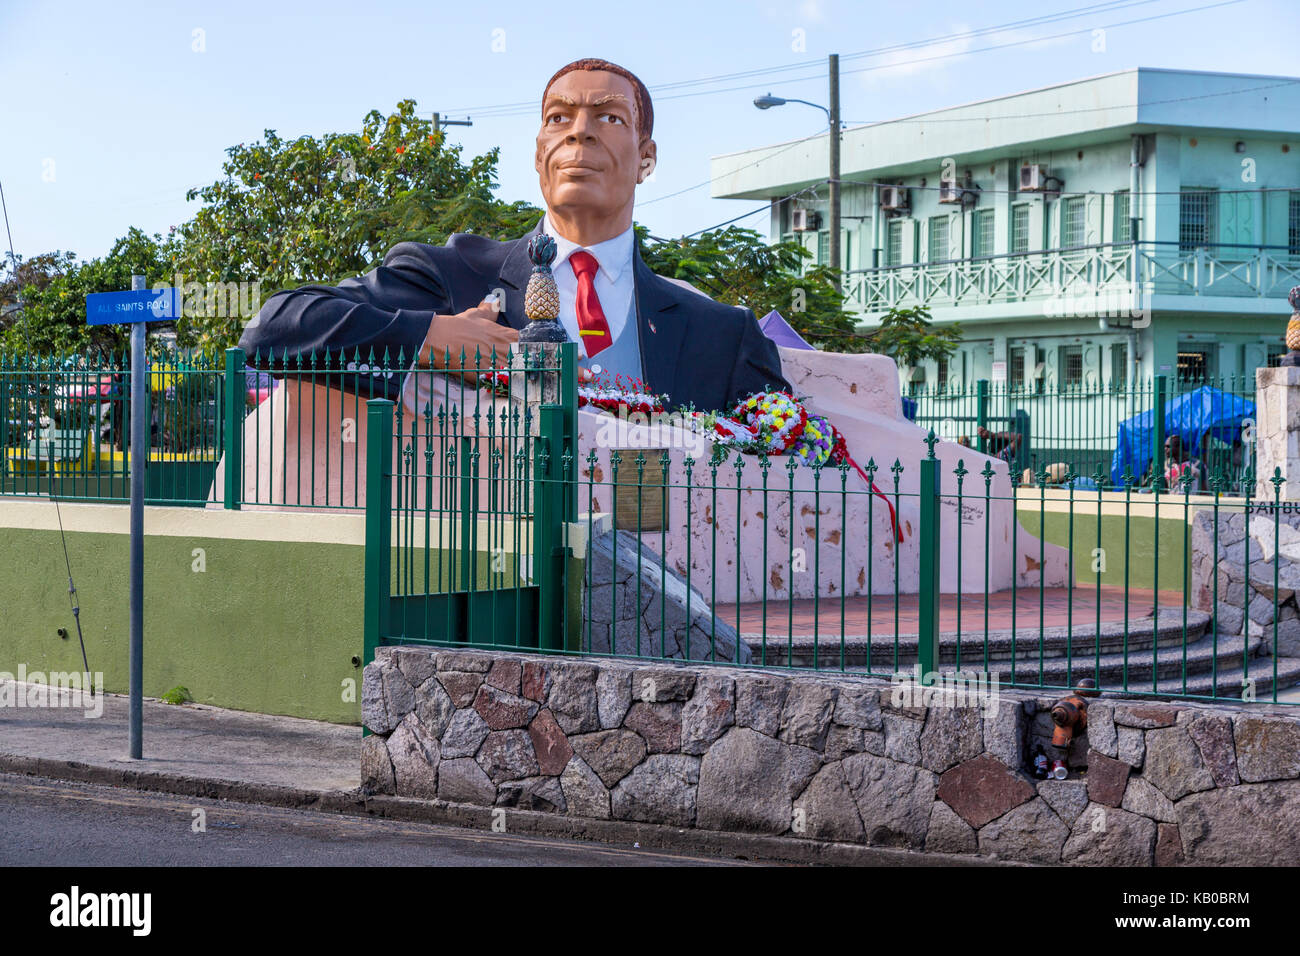 St. Johns, Antigua.  Monument to First Prime Minister, Sir Vere Cornwall Bird, Sr, Father of the Nation. - Stock Image